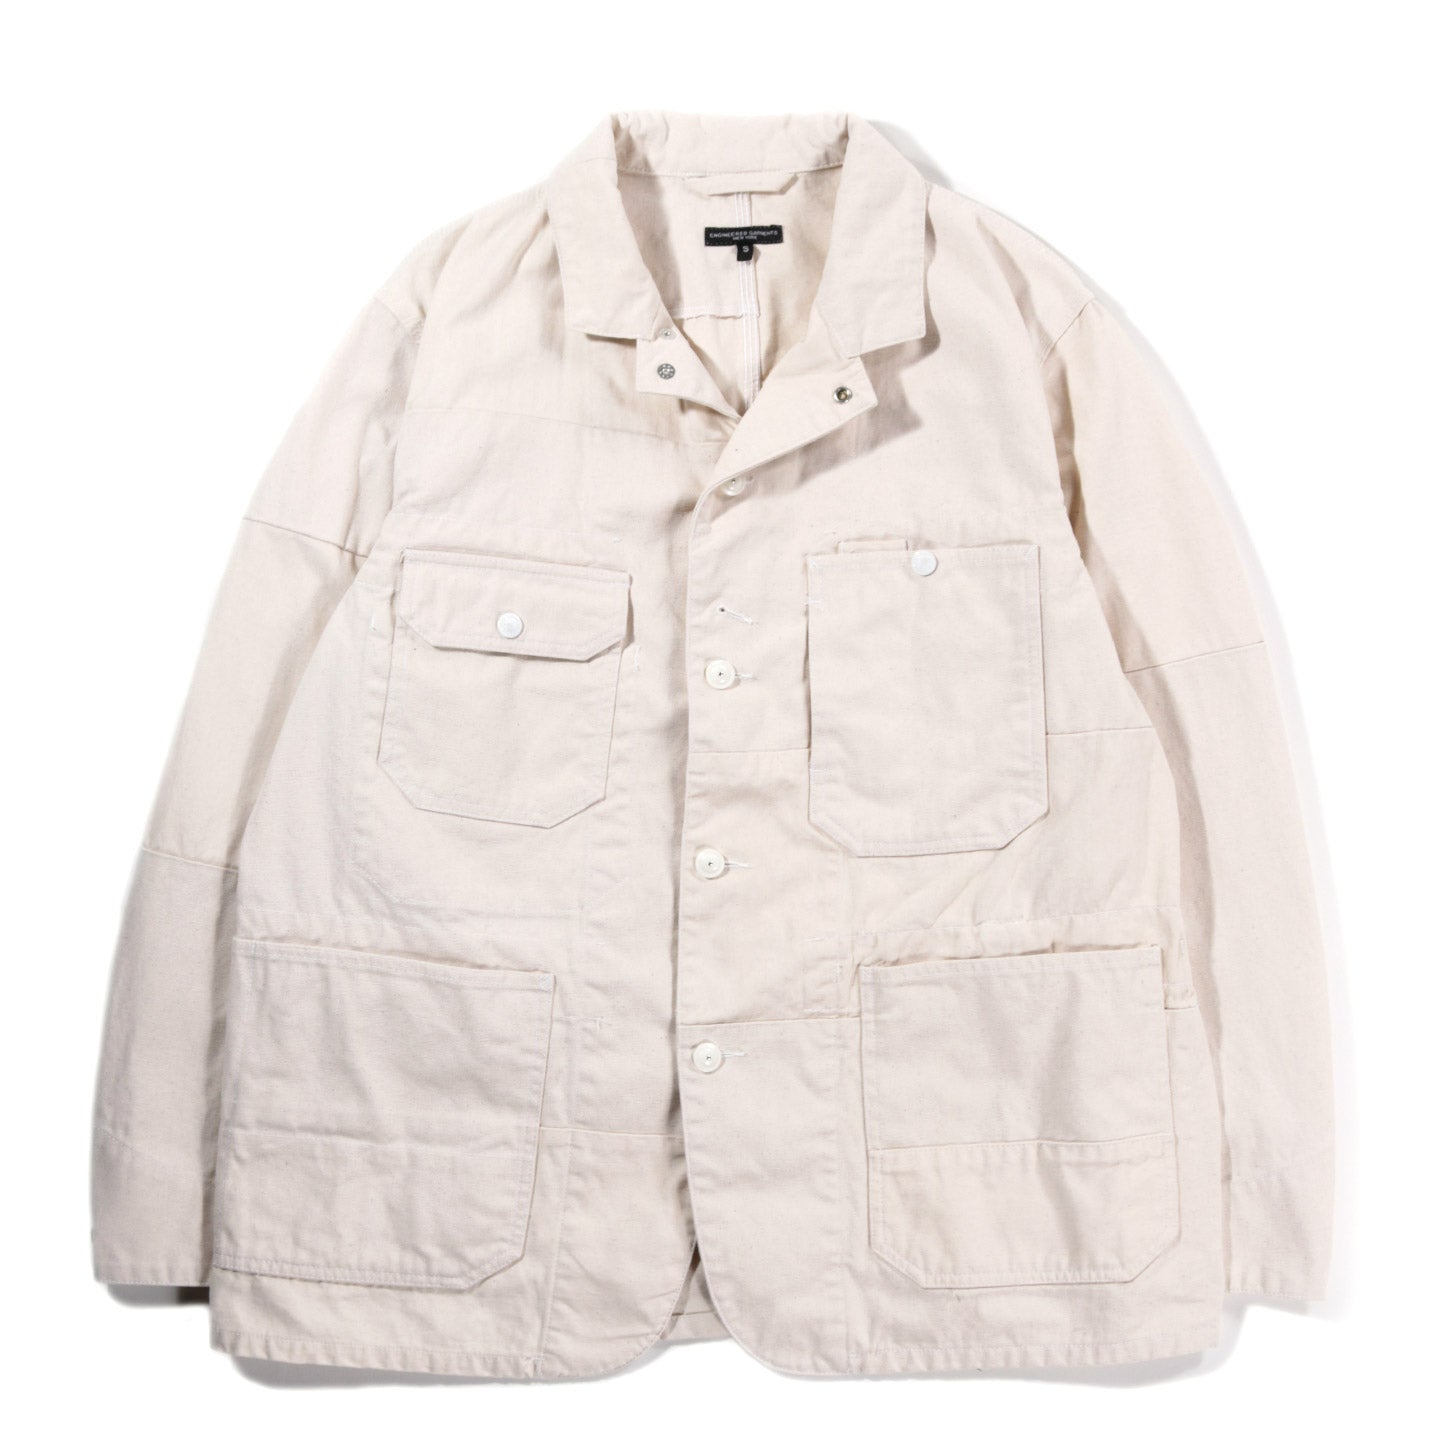 ENGINEERED GARMENTS LOGGER JACKET NATURAL 12OZ DUCK CANVAS